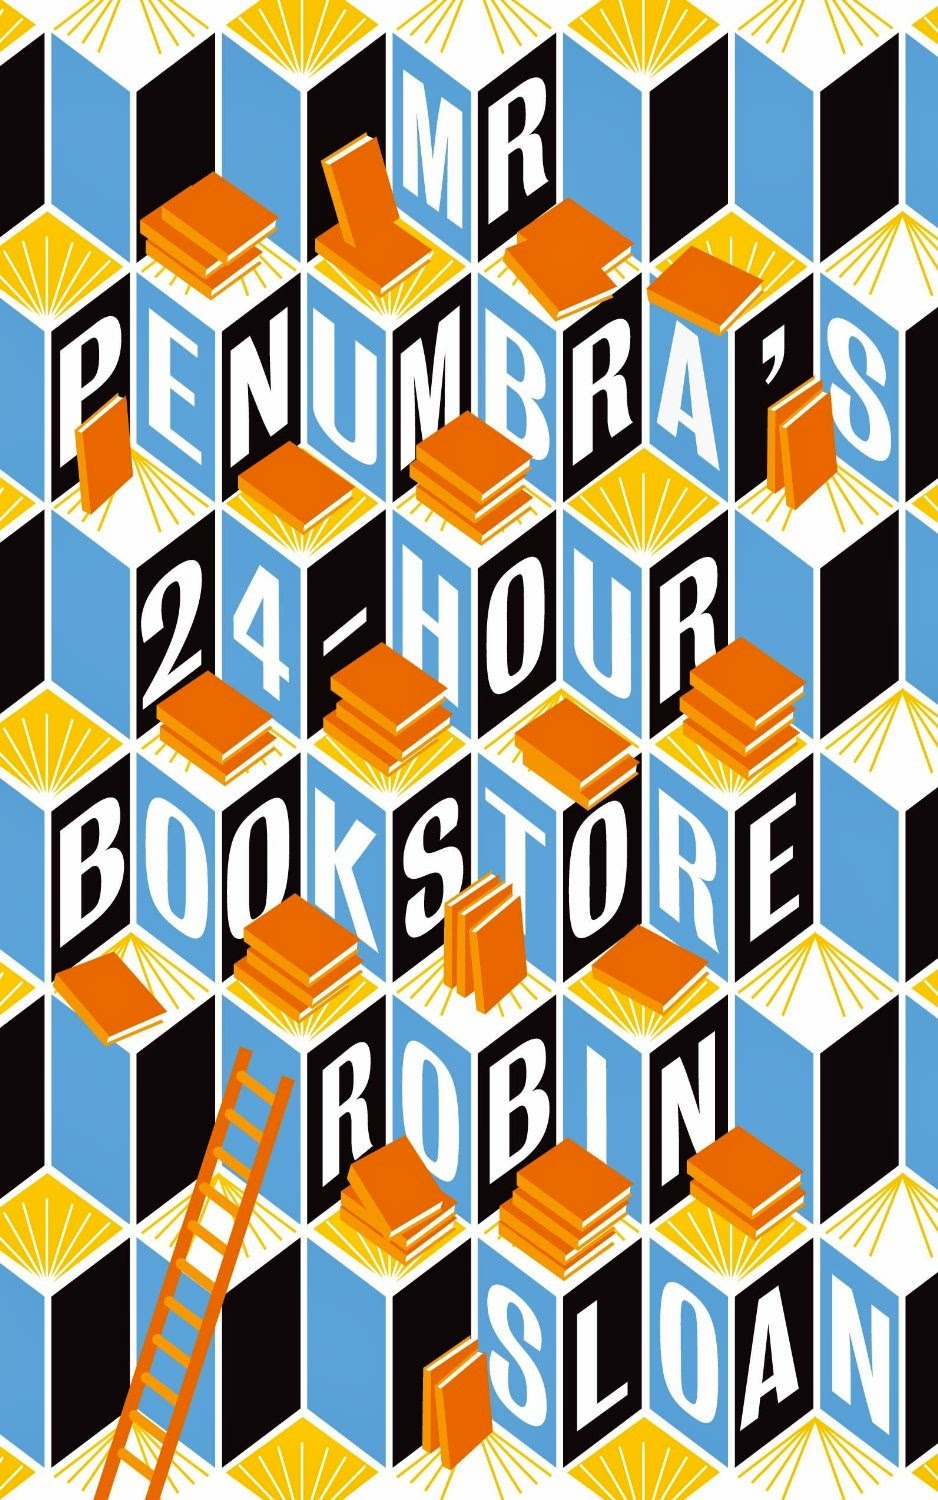 Mr Penumbra bookstore Robin Sloan